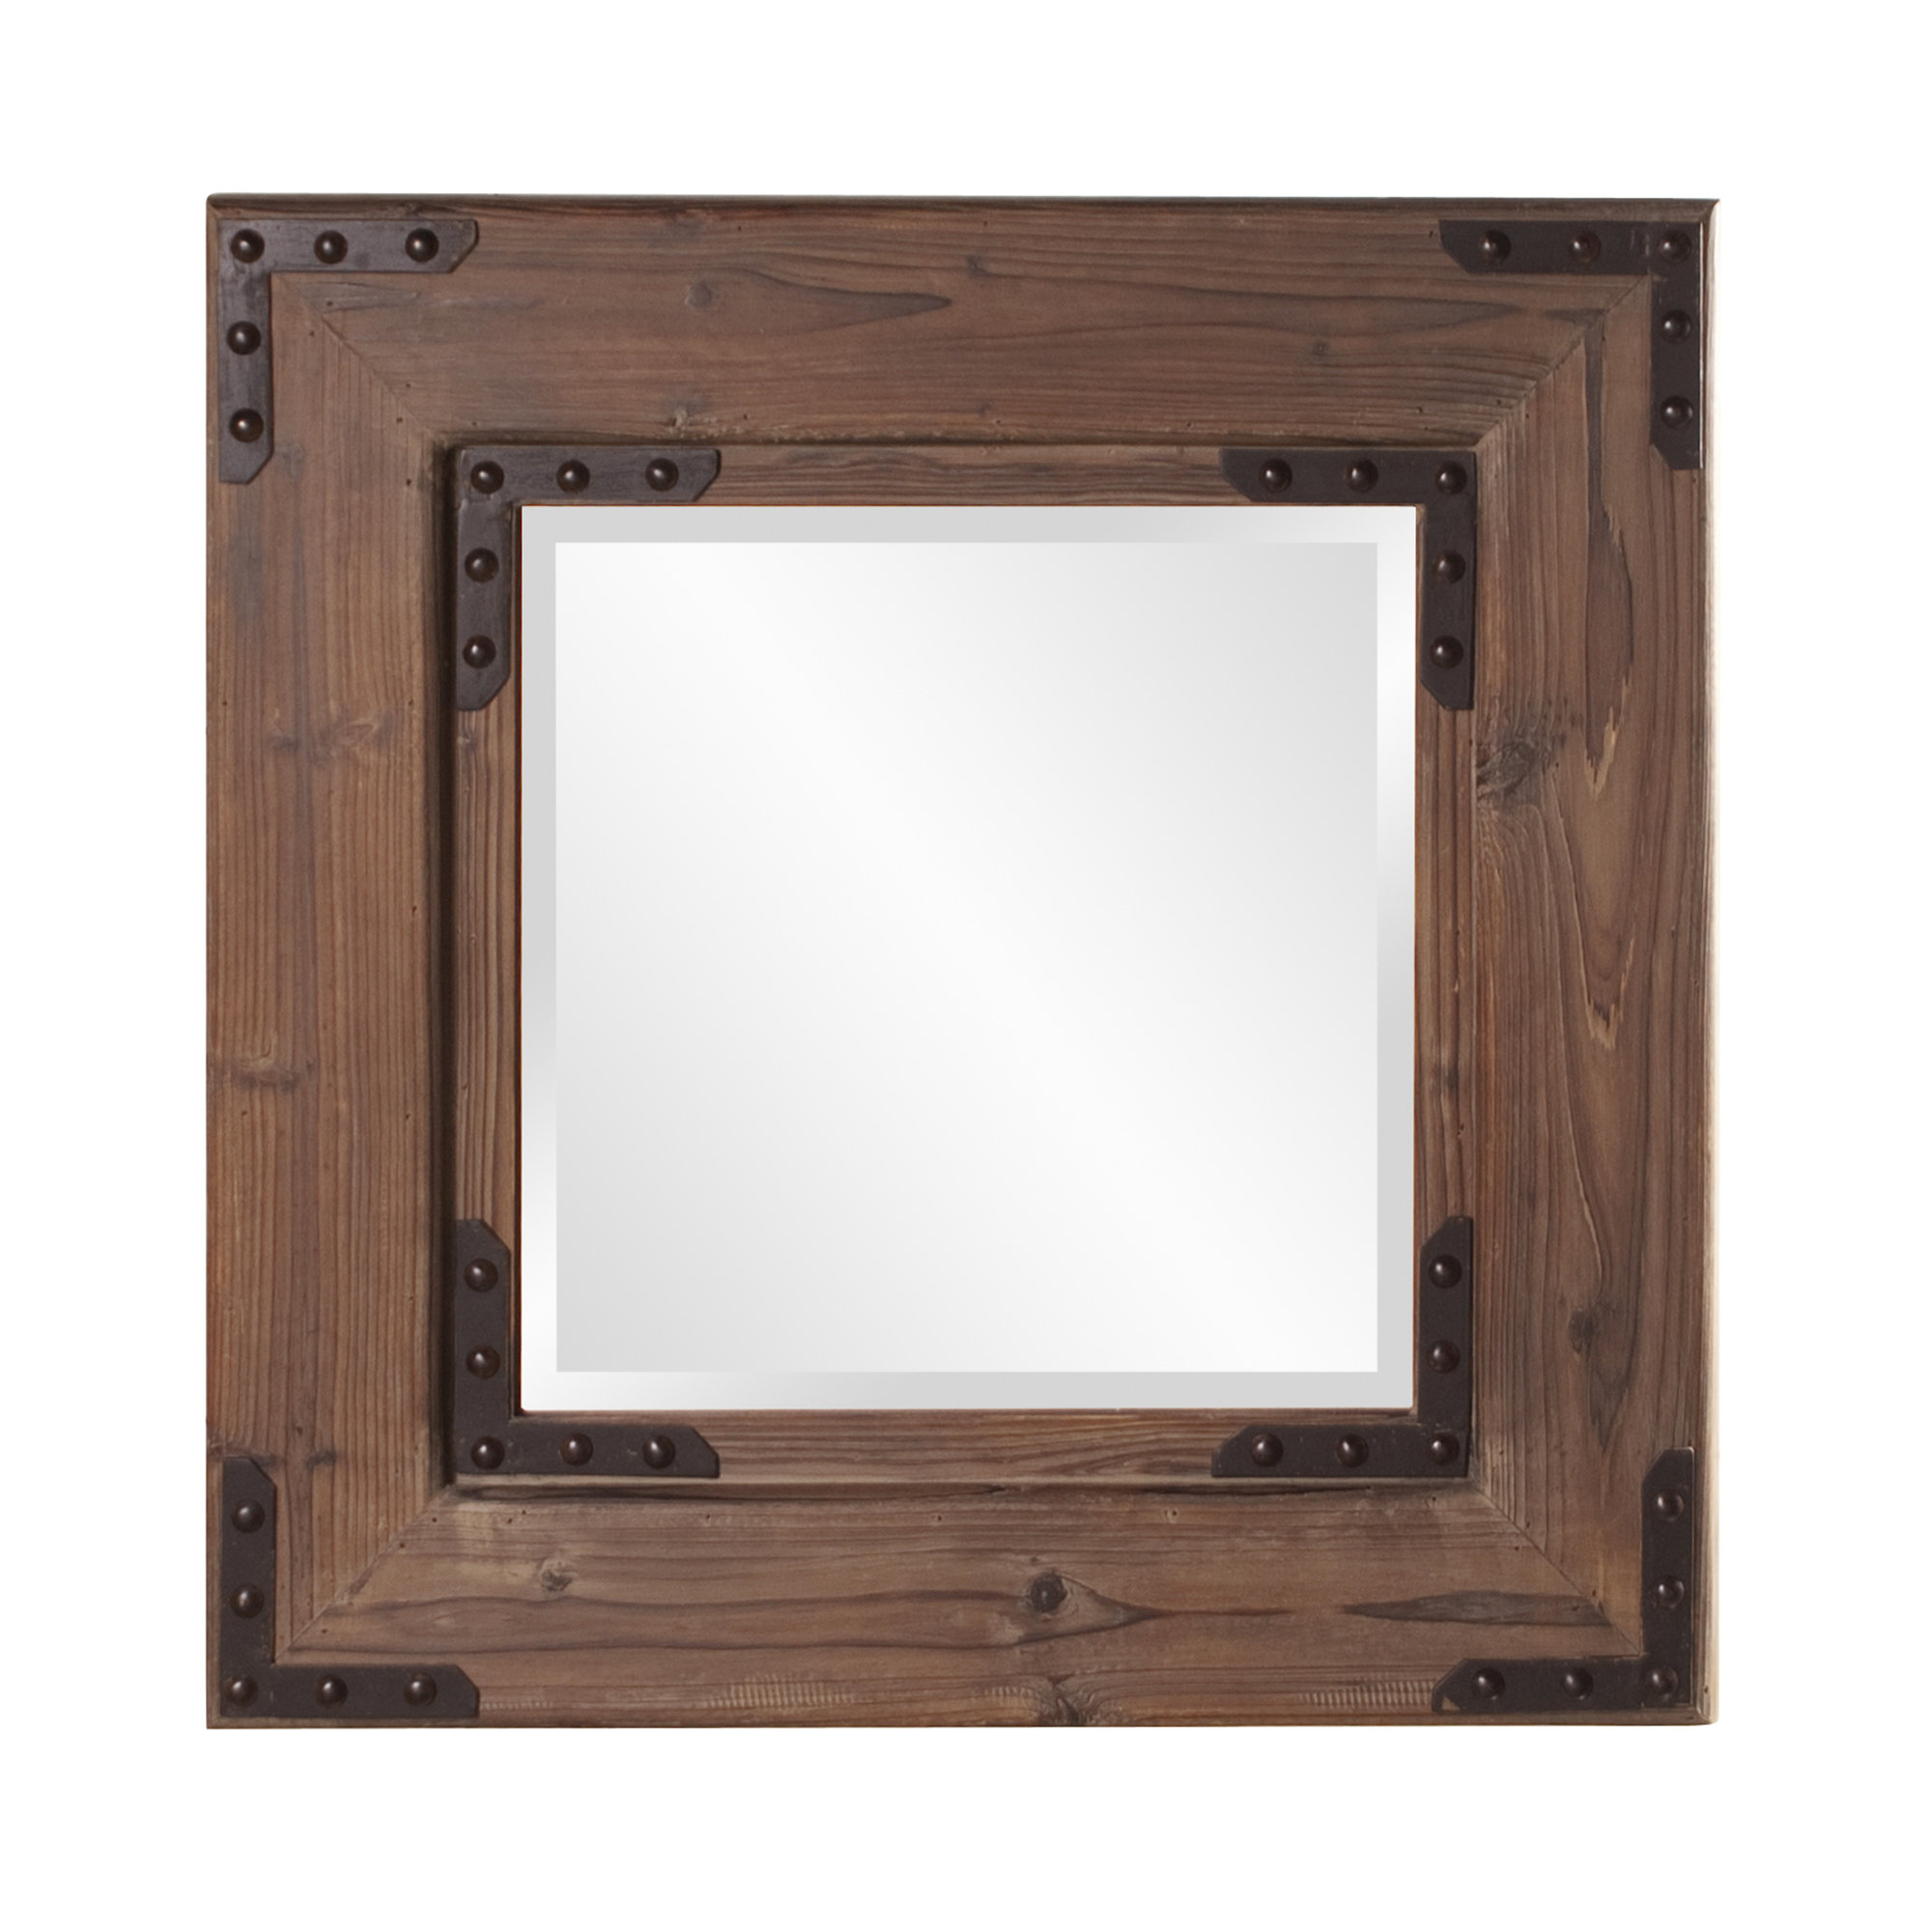 Tifton Traditional Beveled Accent Mirror Pertaining To Tifton Traditional Beveled Accent Mirrors (Image 17 of 20)